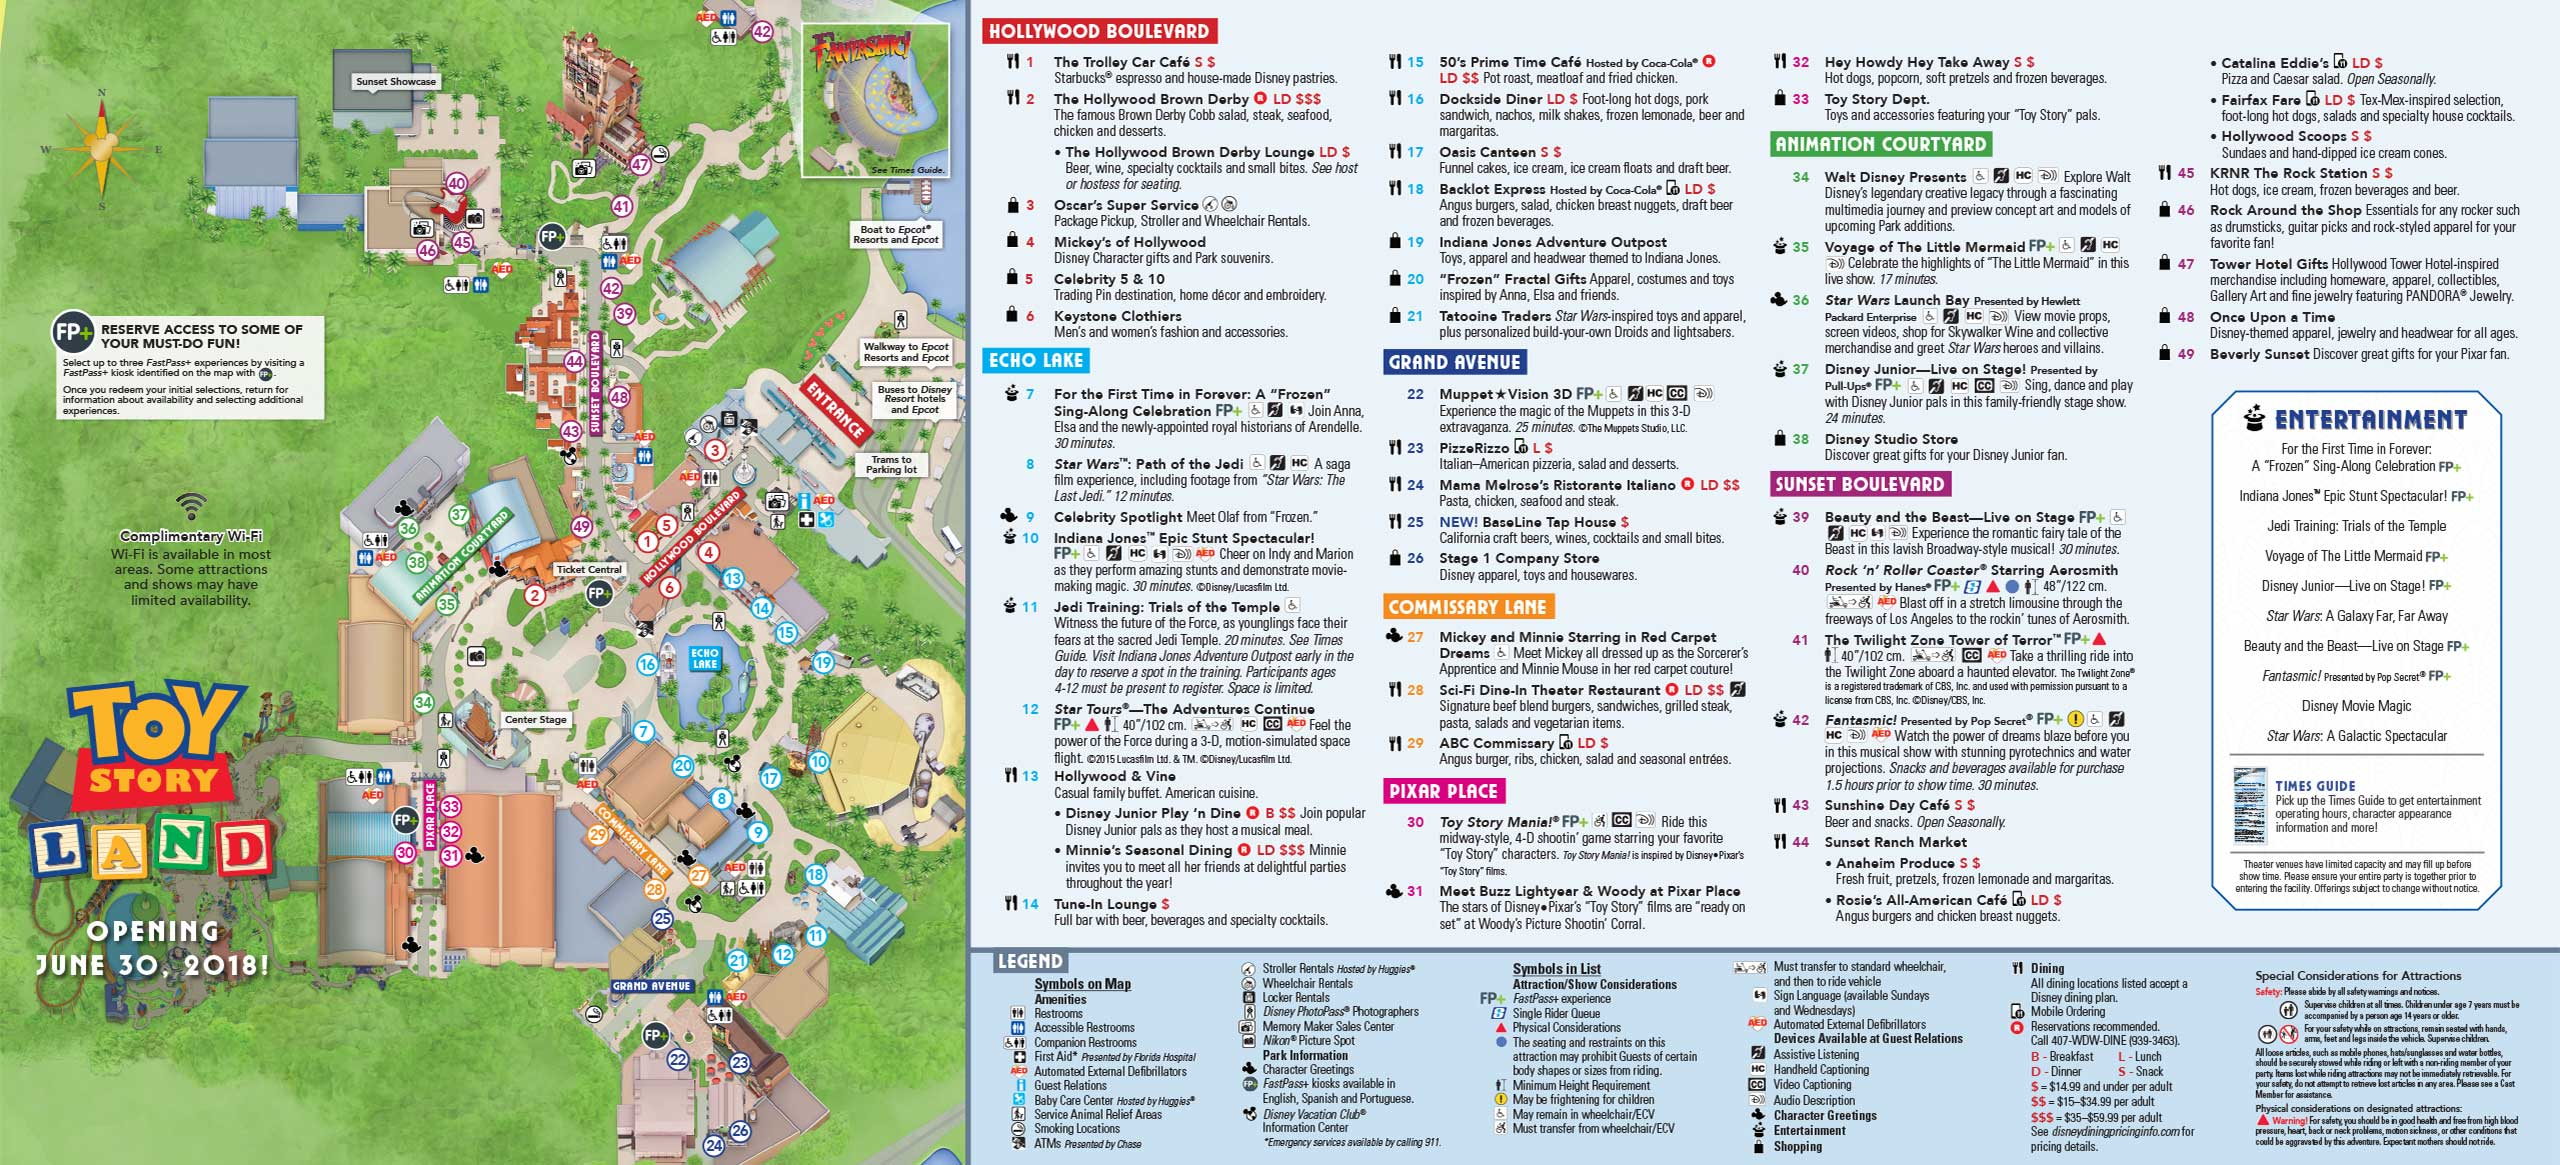 Studios Map with pre-opening Toy Story Land